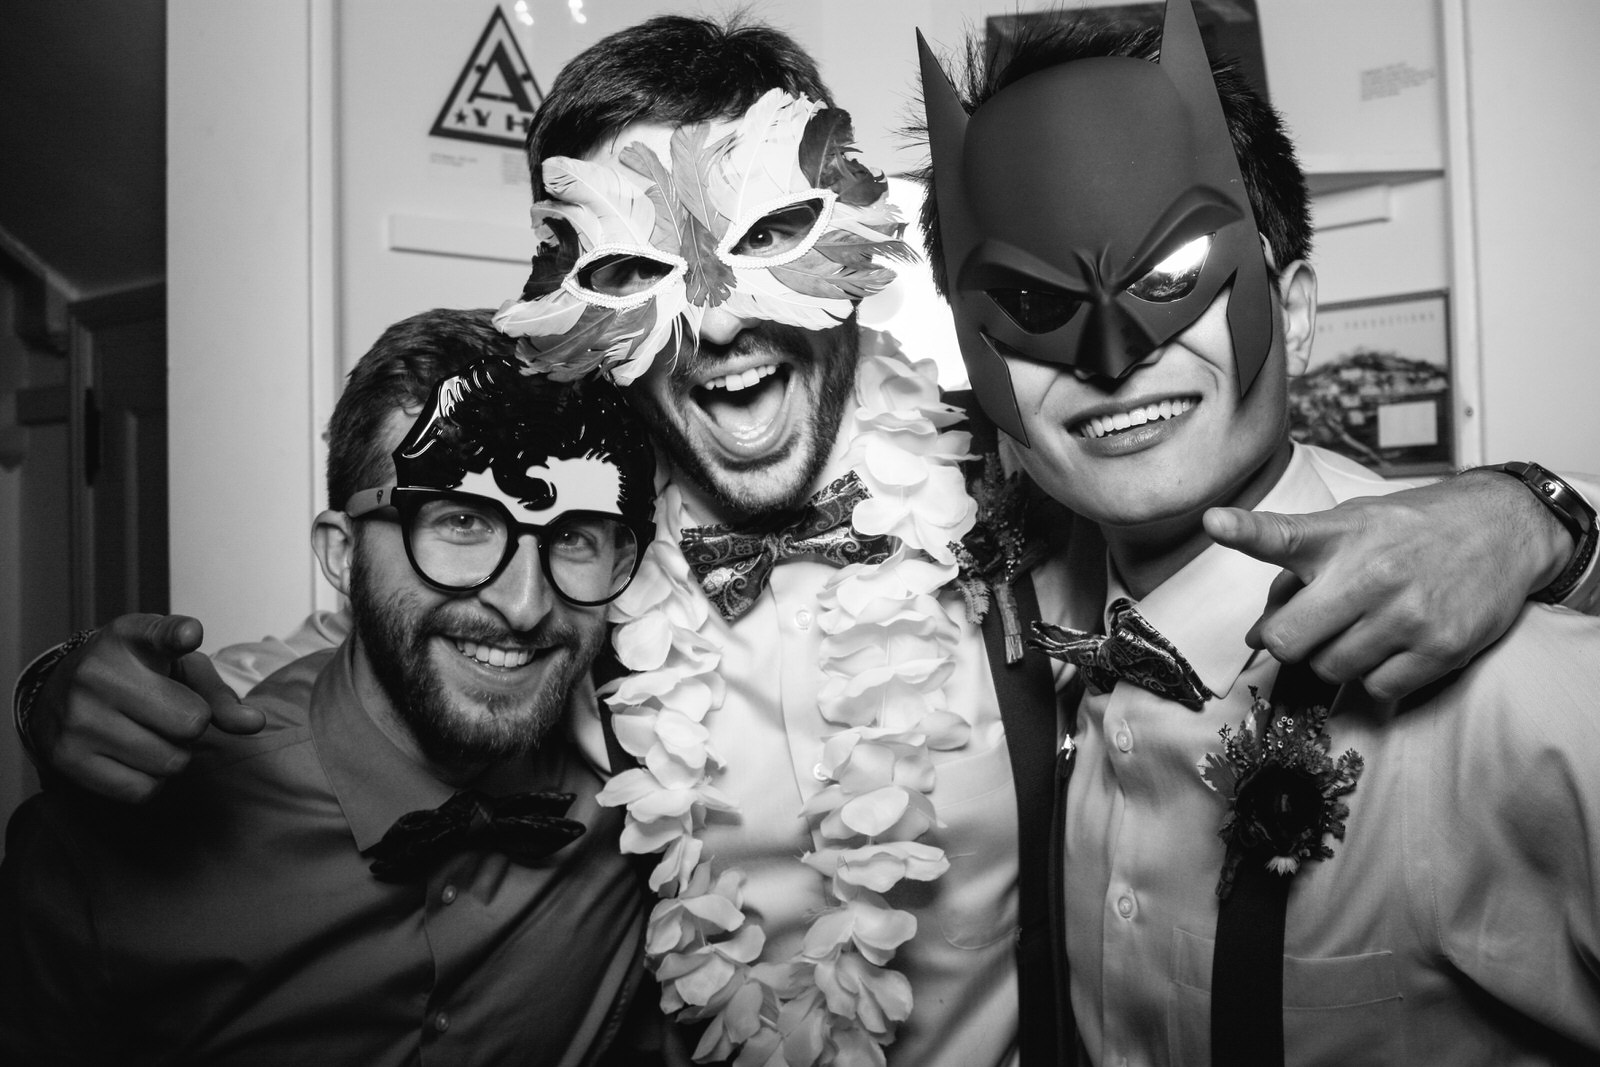 Richard-Donna-Wedding-Photo-Booth-12.jpg